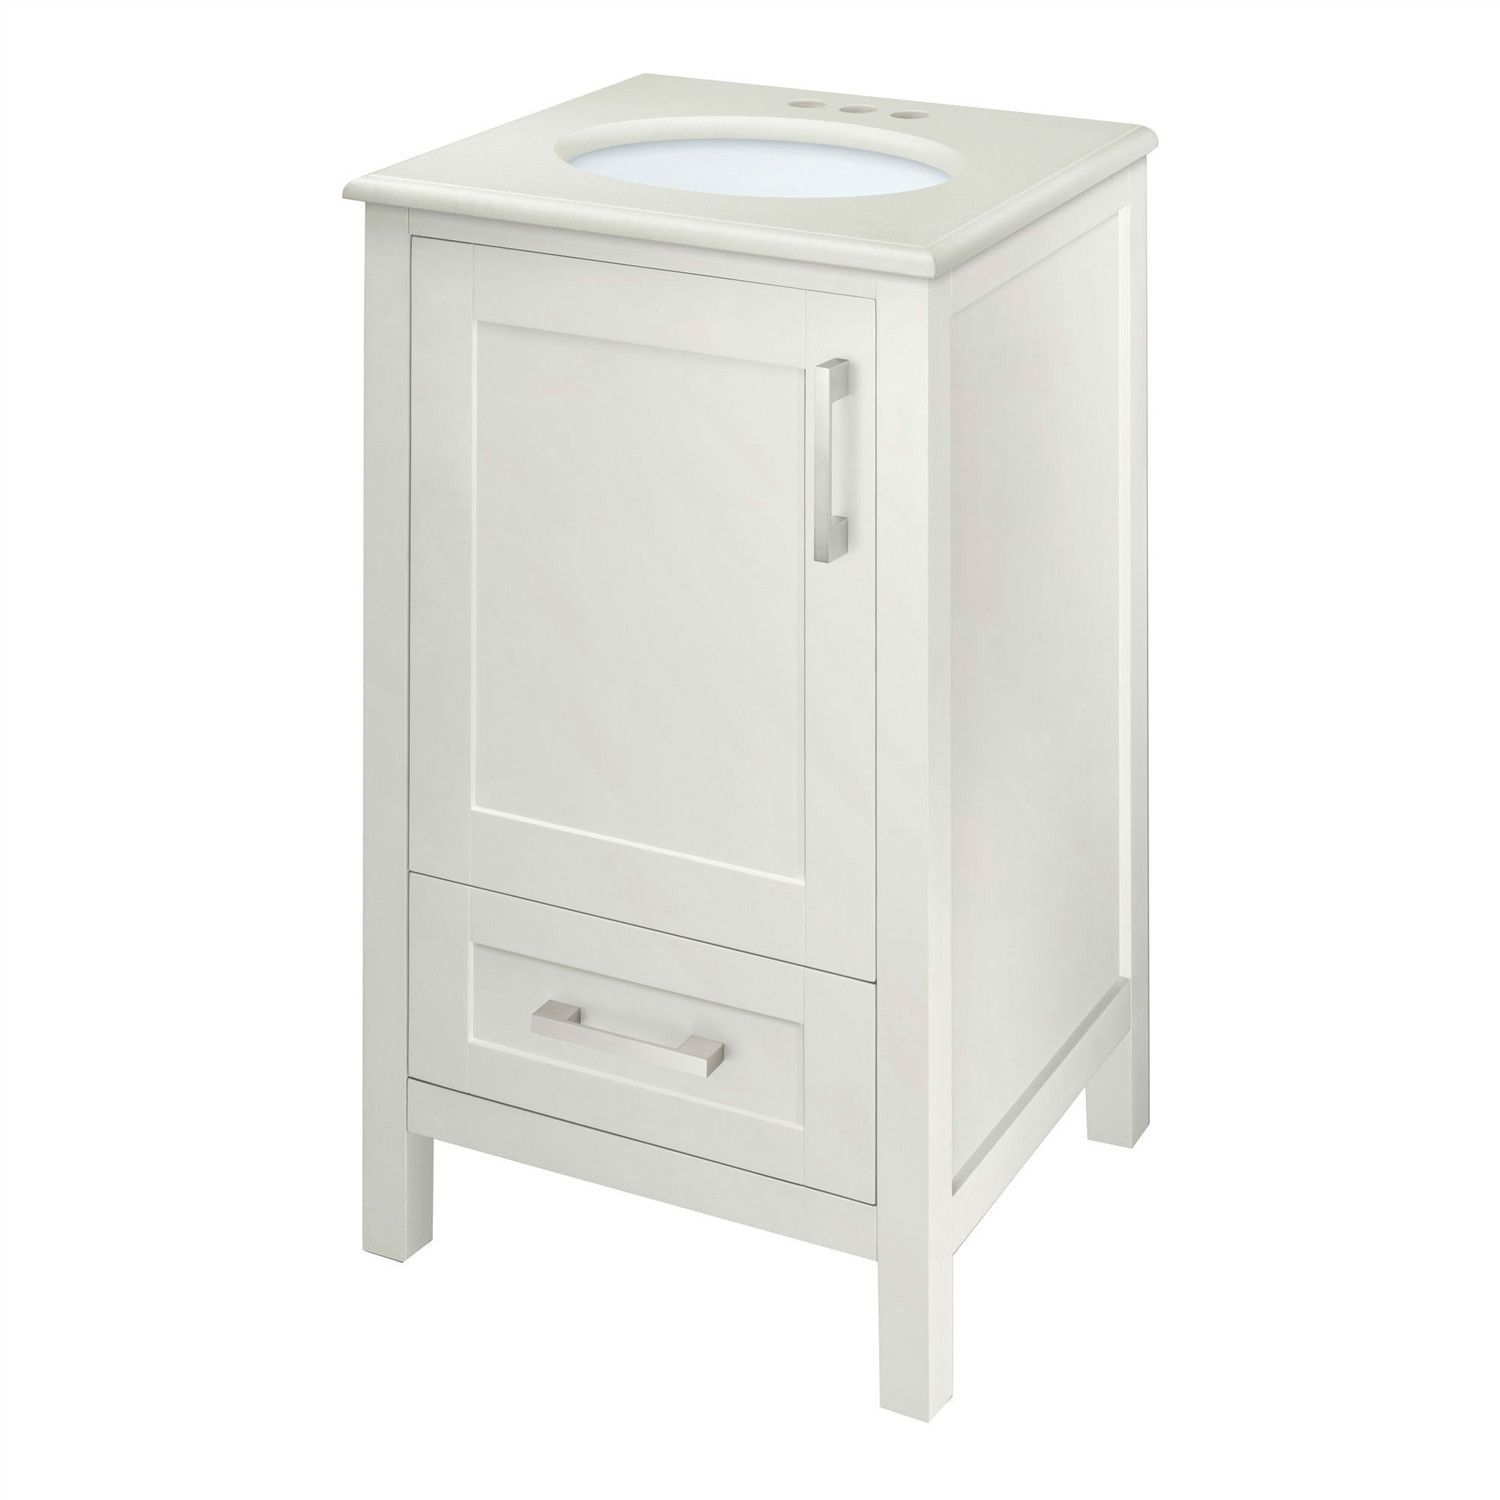 Contemporary 20 inch Bathroom Vanity Set with Single Oval